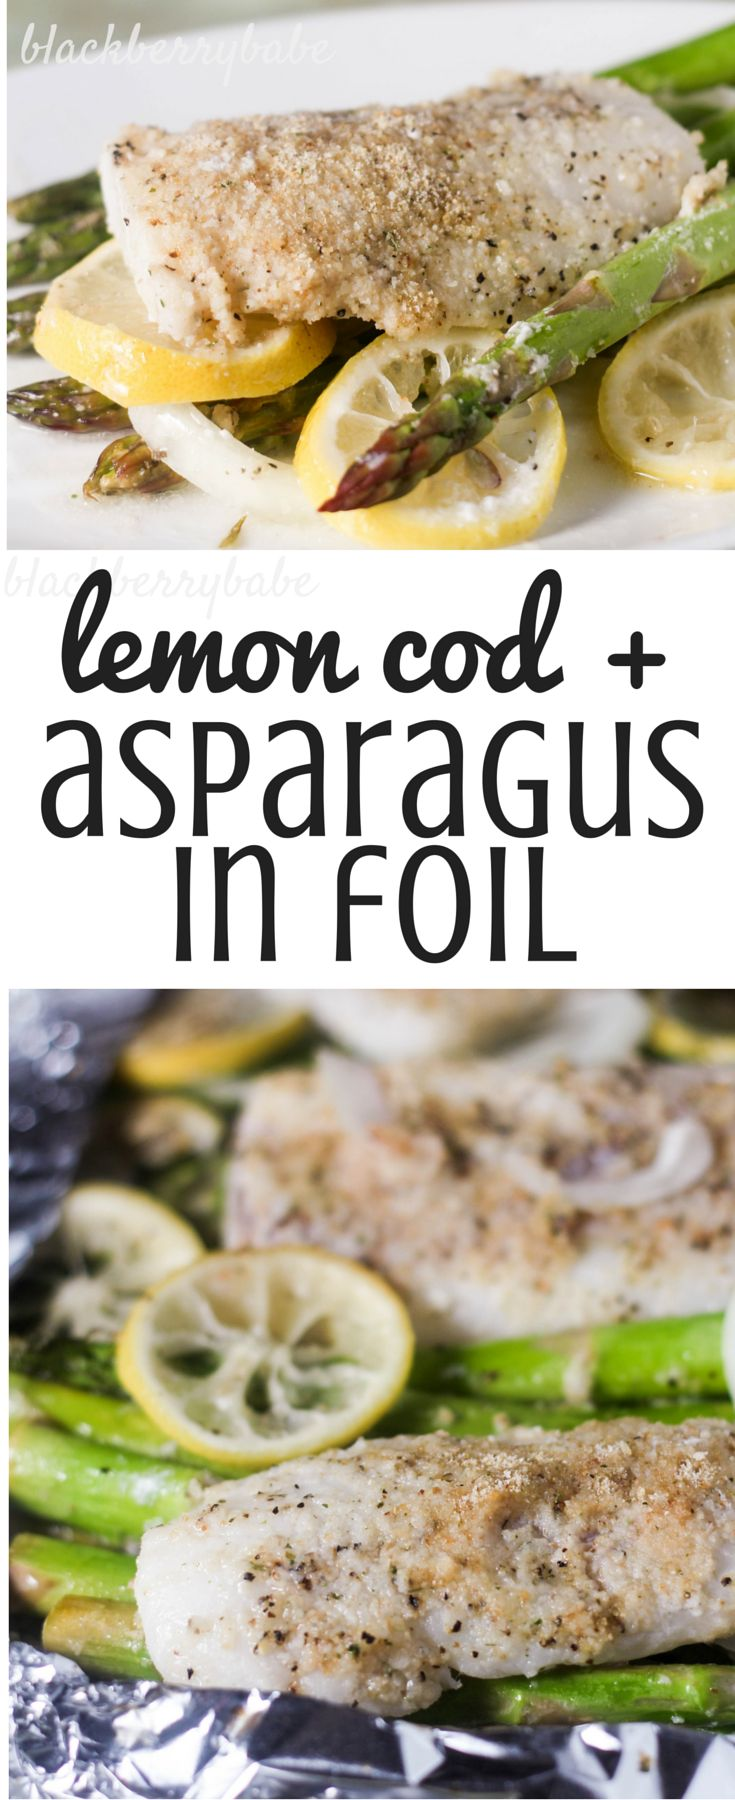 Lemon Cod with Asparagus in Foil - Easy and very healthy foil dinner #NourishingEveryday #CollectiveBias #ad